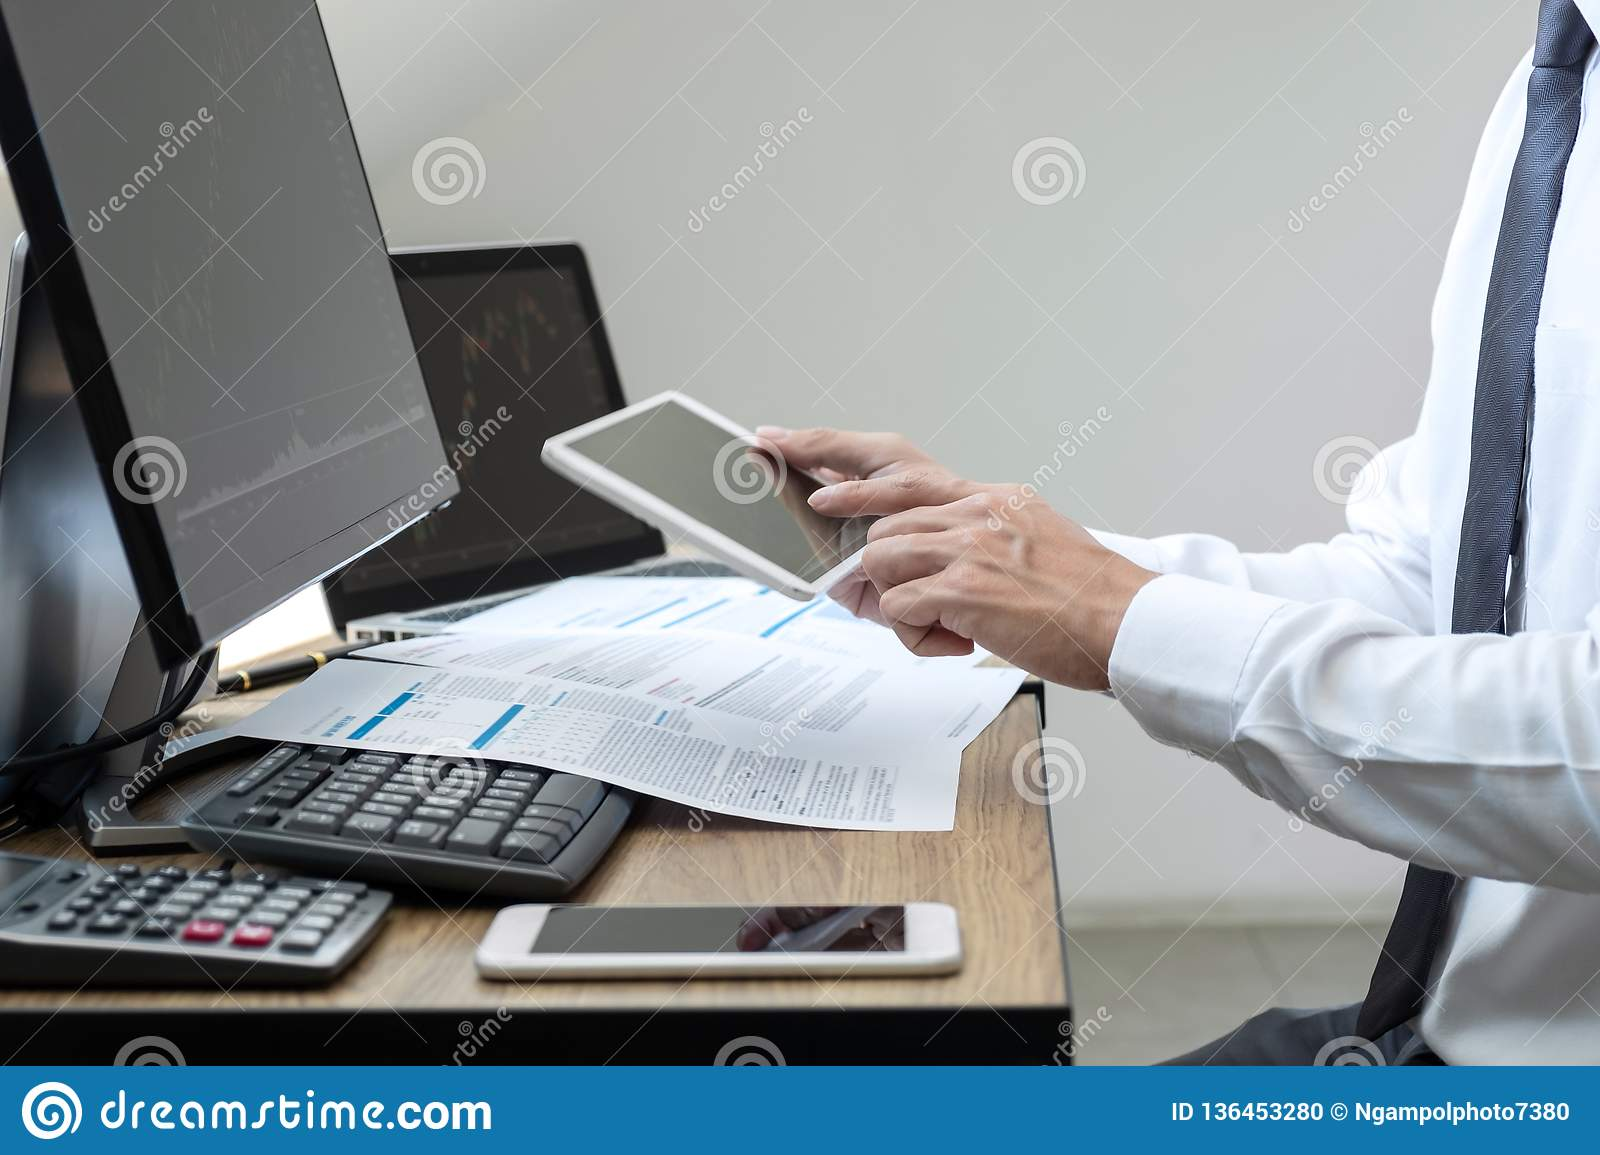 Stock exchange market concept, stock broker looking at graph working and analyzing with display screen, pointing on the data